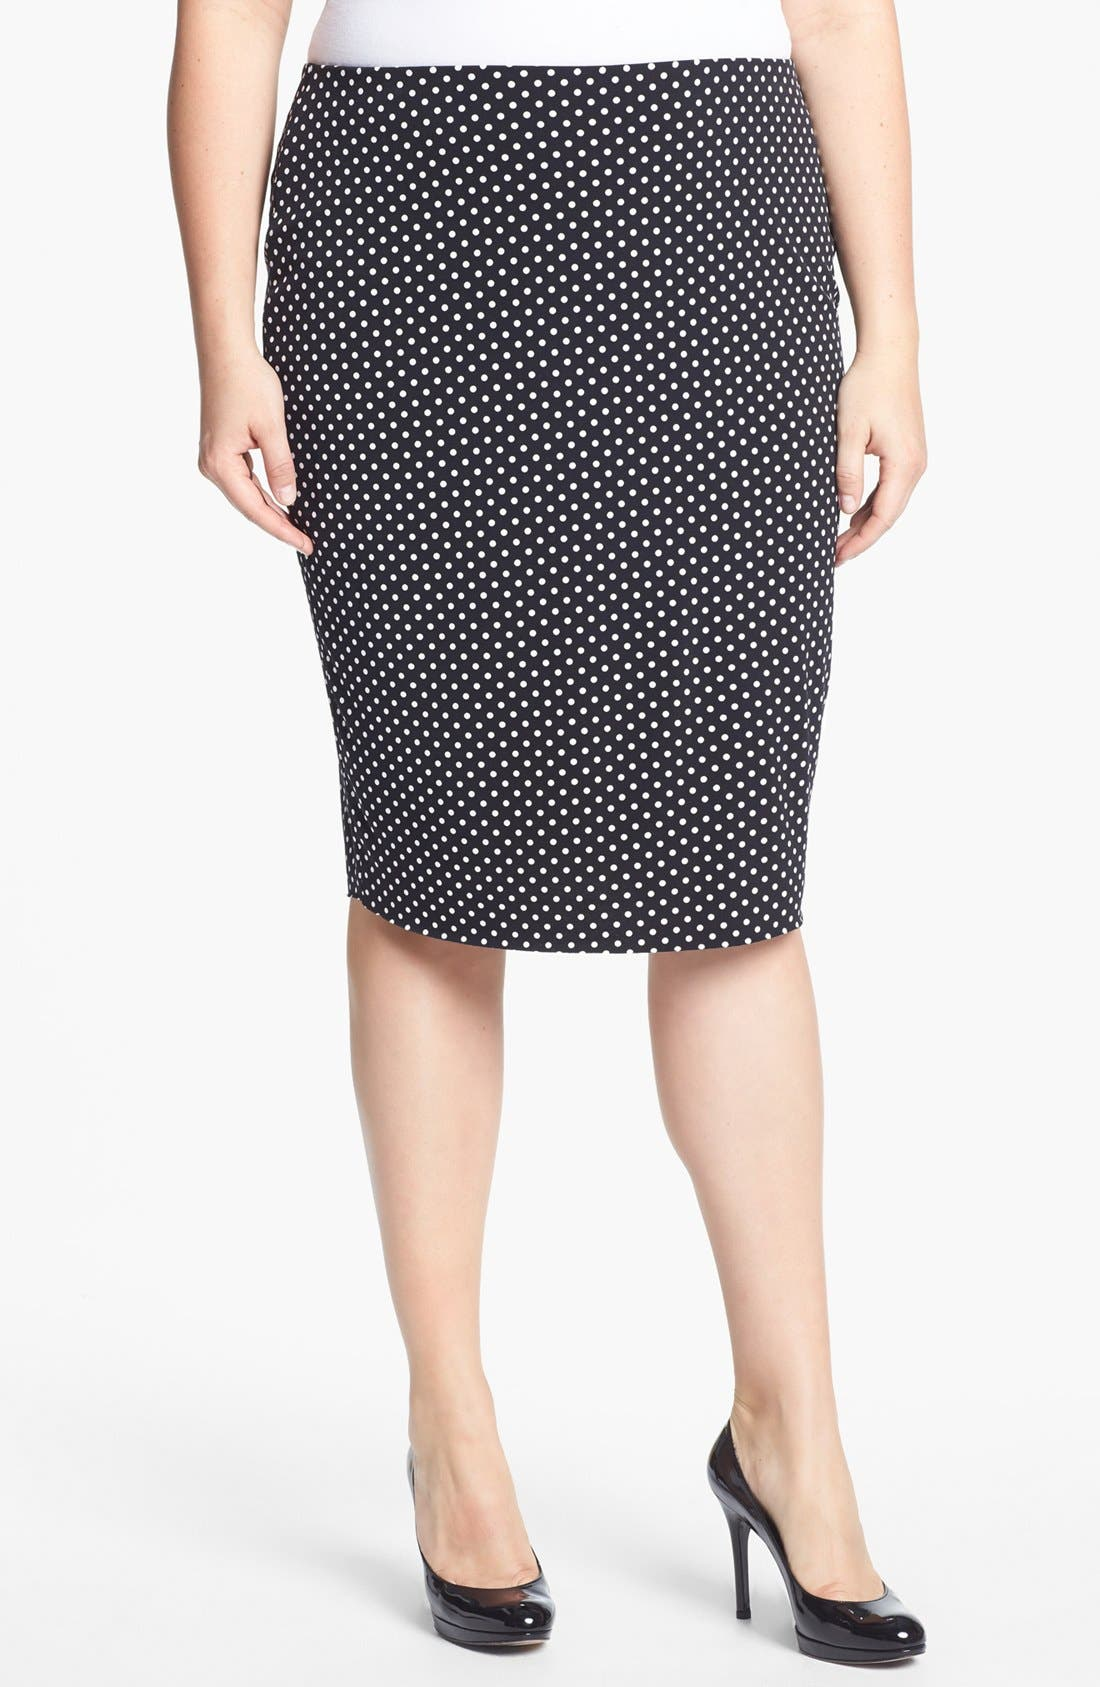 Alternate Image 1 Selected - Vince Camuto Polka Dot Midi Tube Skirt (Plus Size)